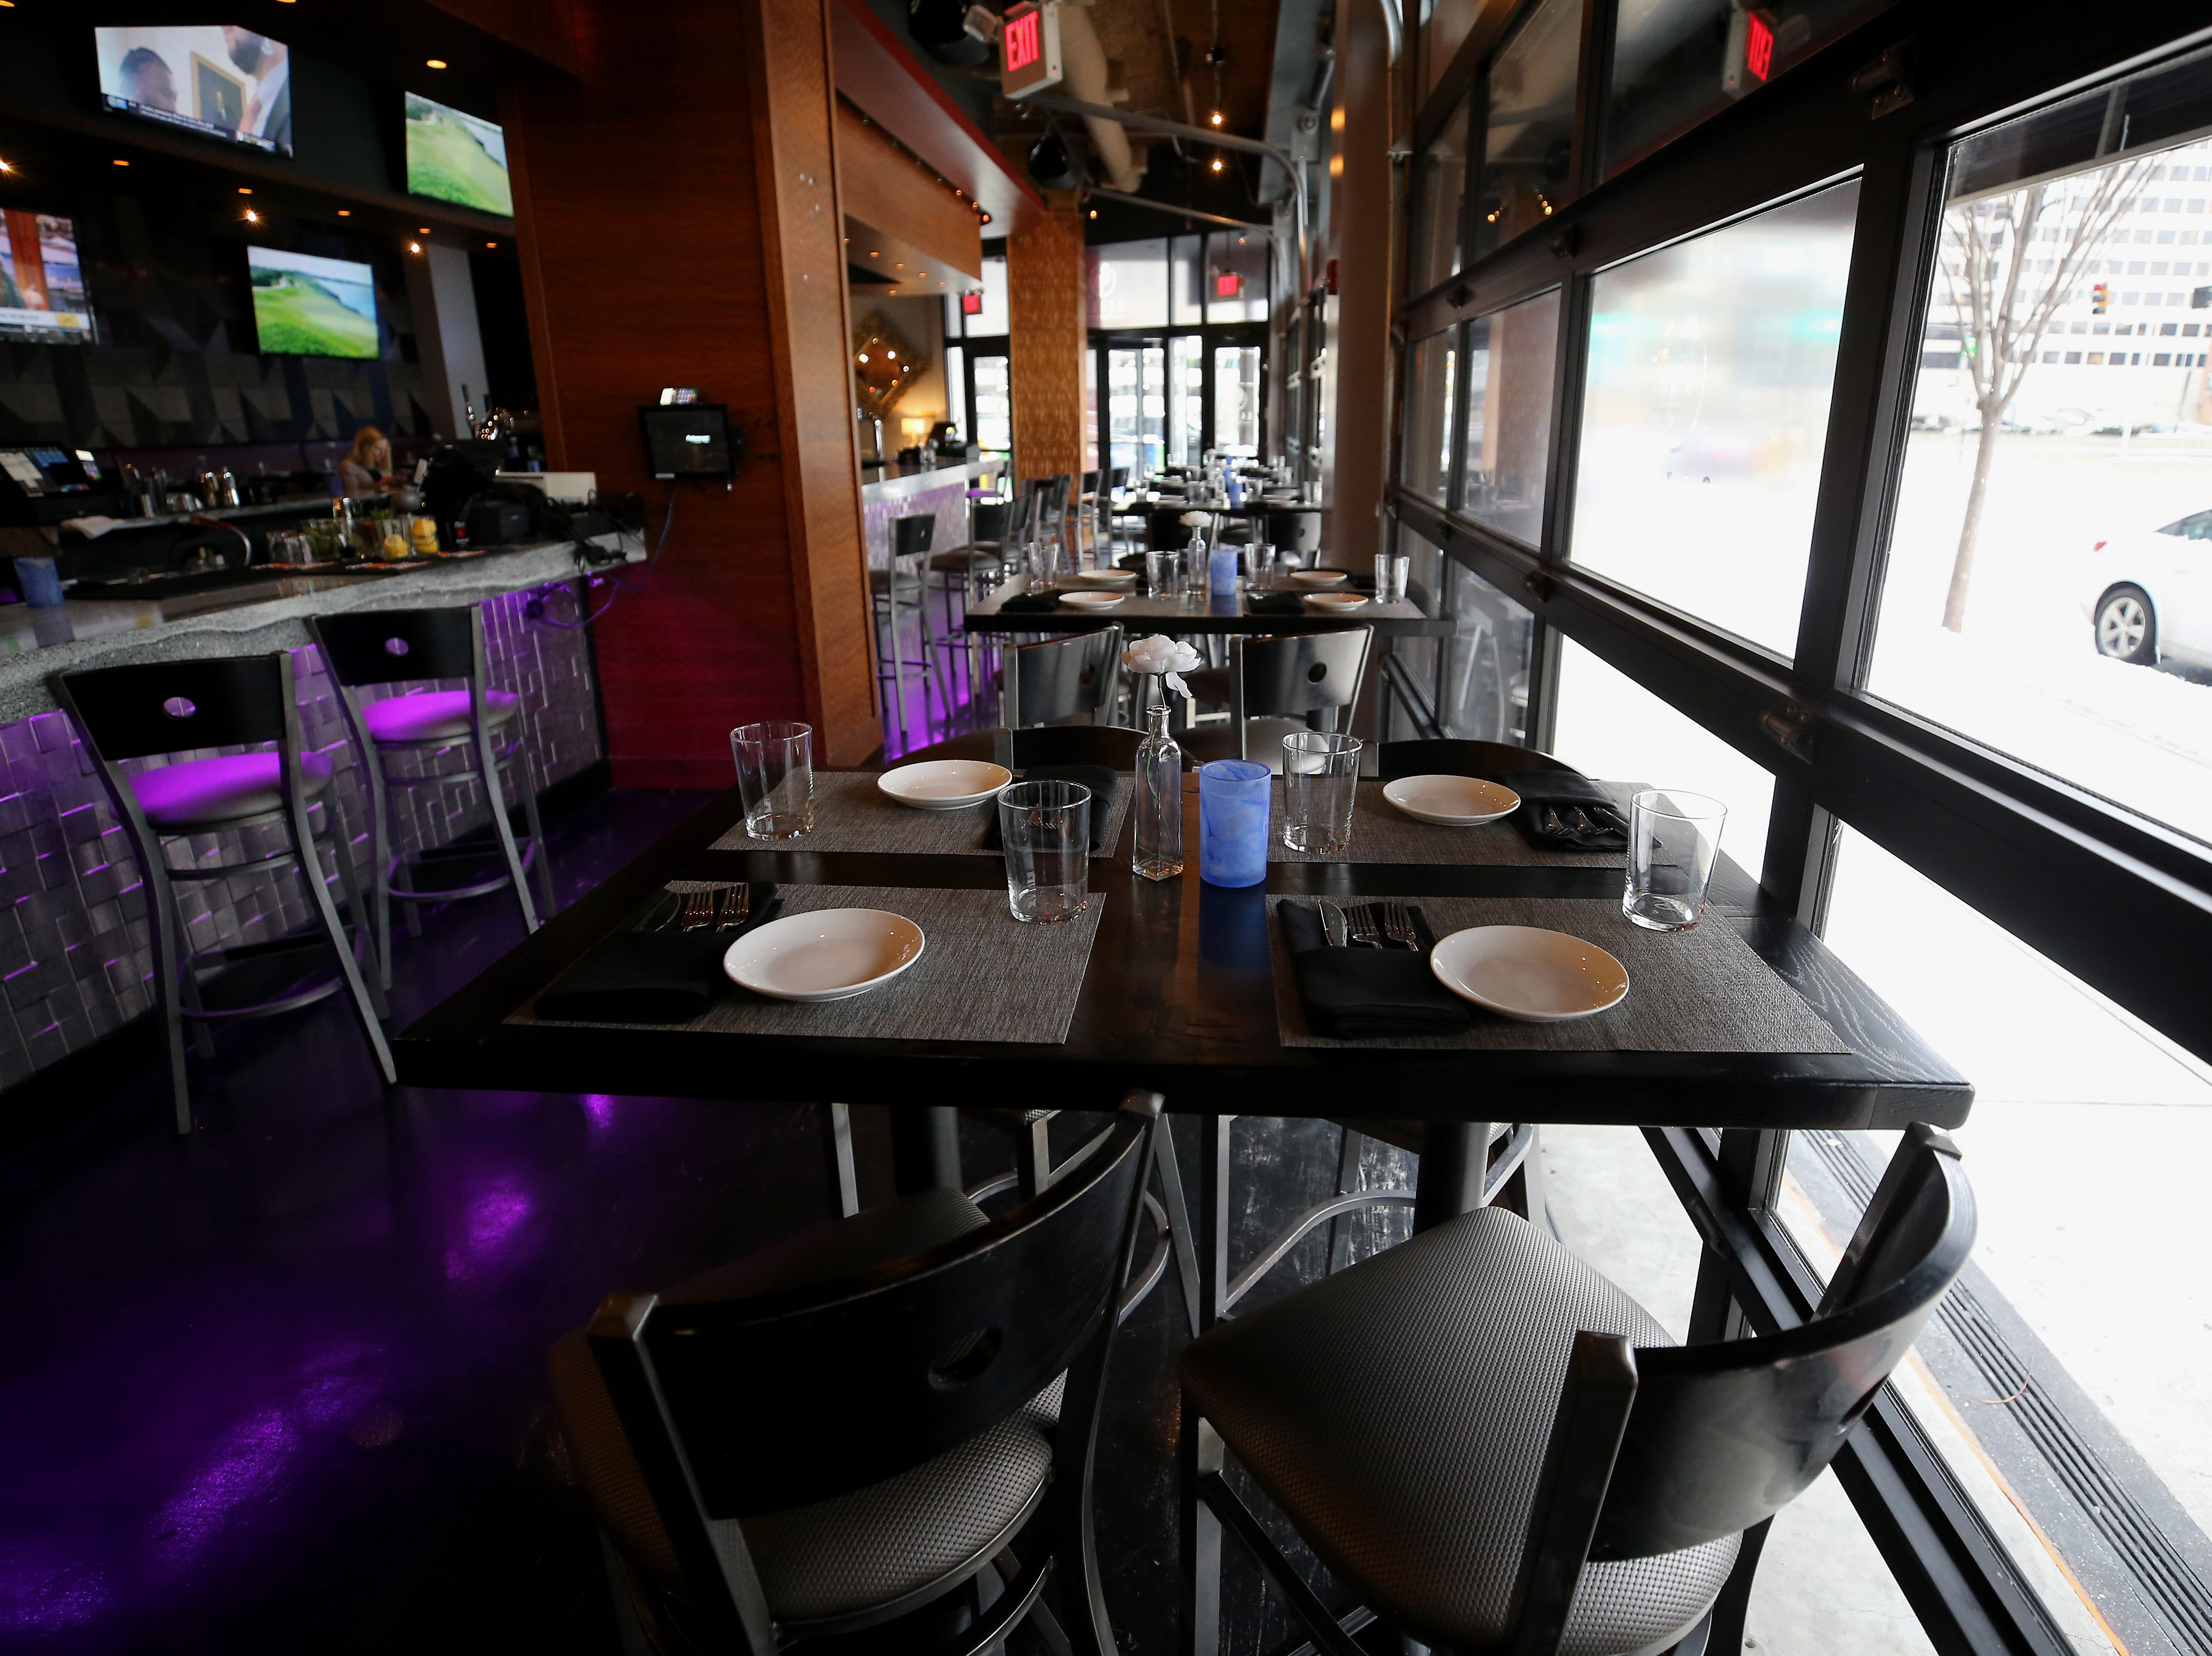 View of seating near the main bar, pictured, Tuesday, Jan. 15, 2019, at Galla Park restaurant at The Banks in Cincinnati.